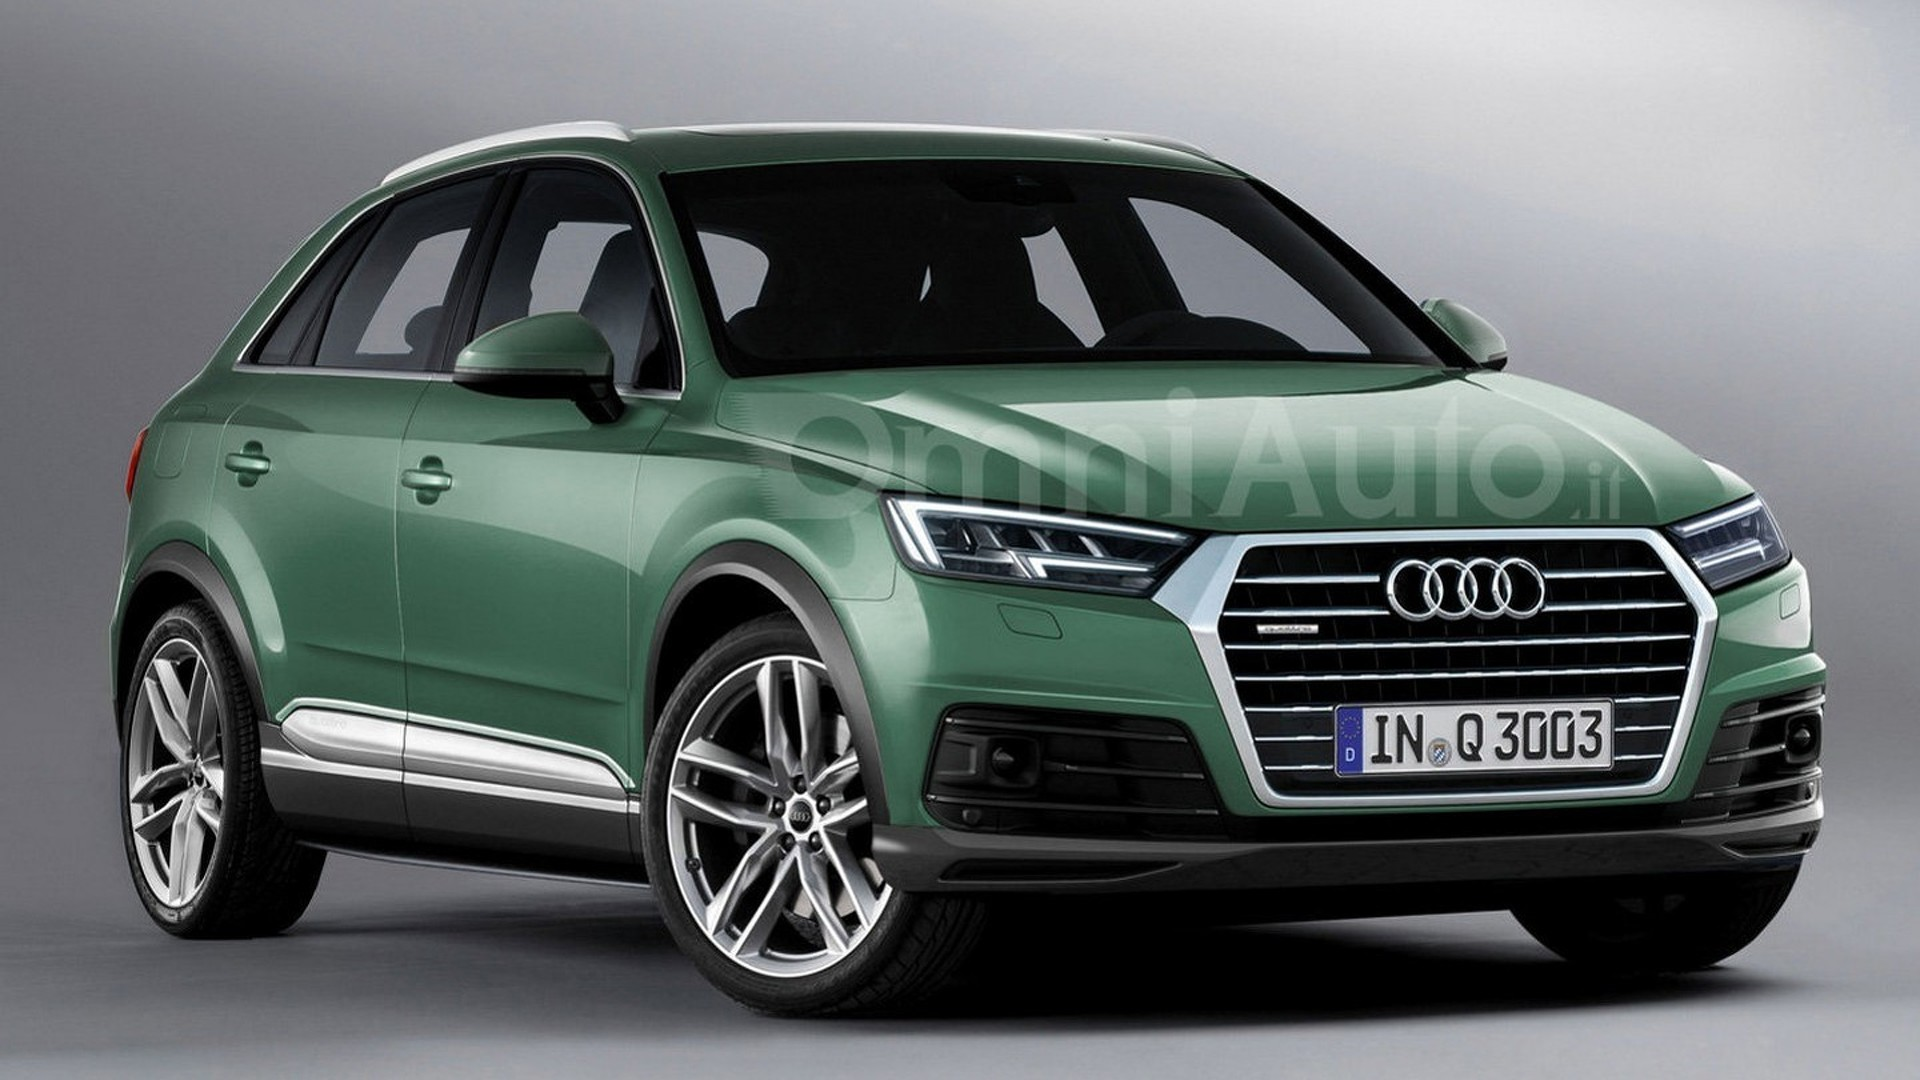 2018 Audi Q3 Render Points Towards Predictable Design